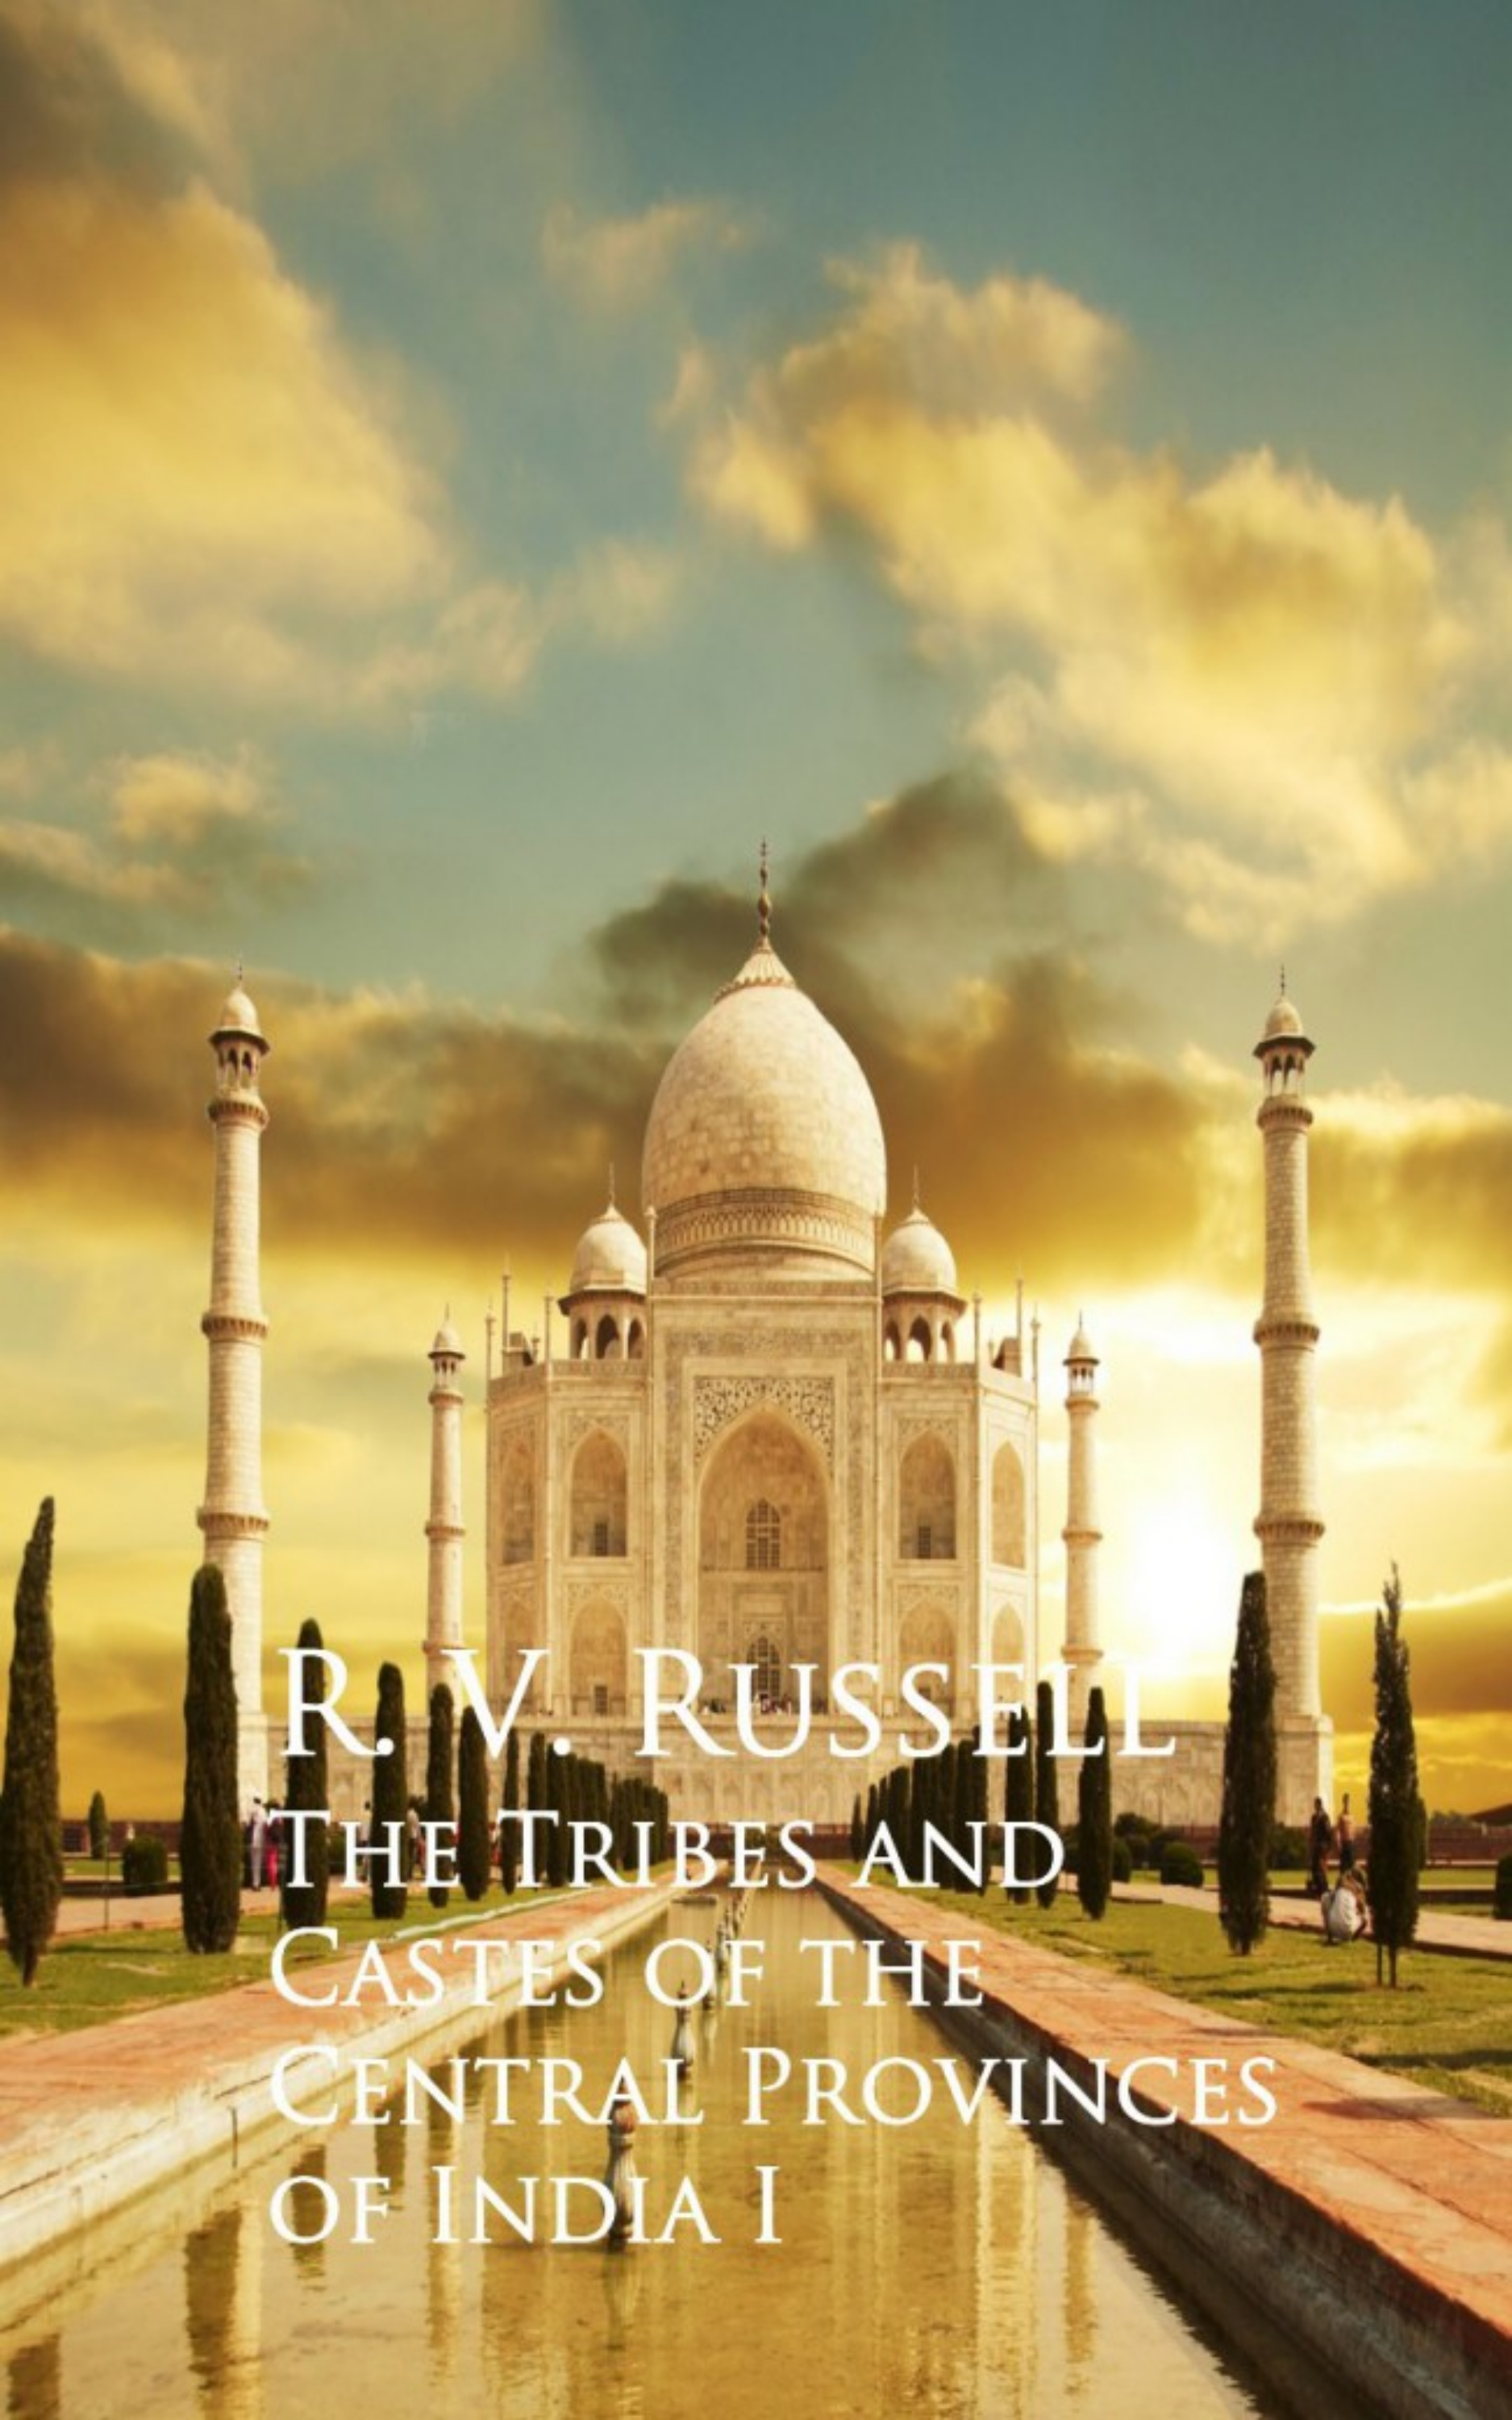 R. V. Russell The Tribes and Castes of the Central Provinces of India I